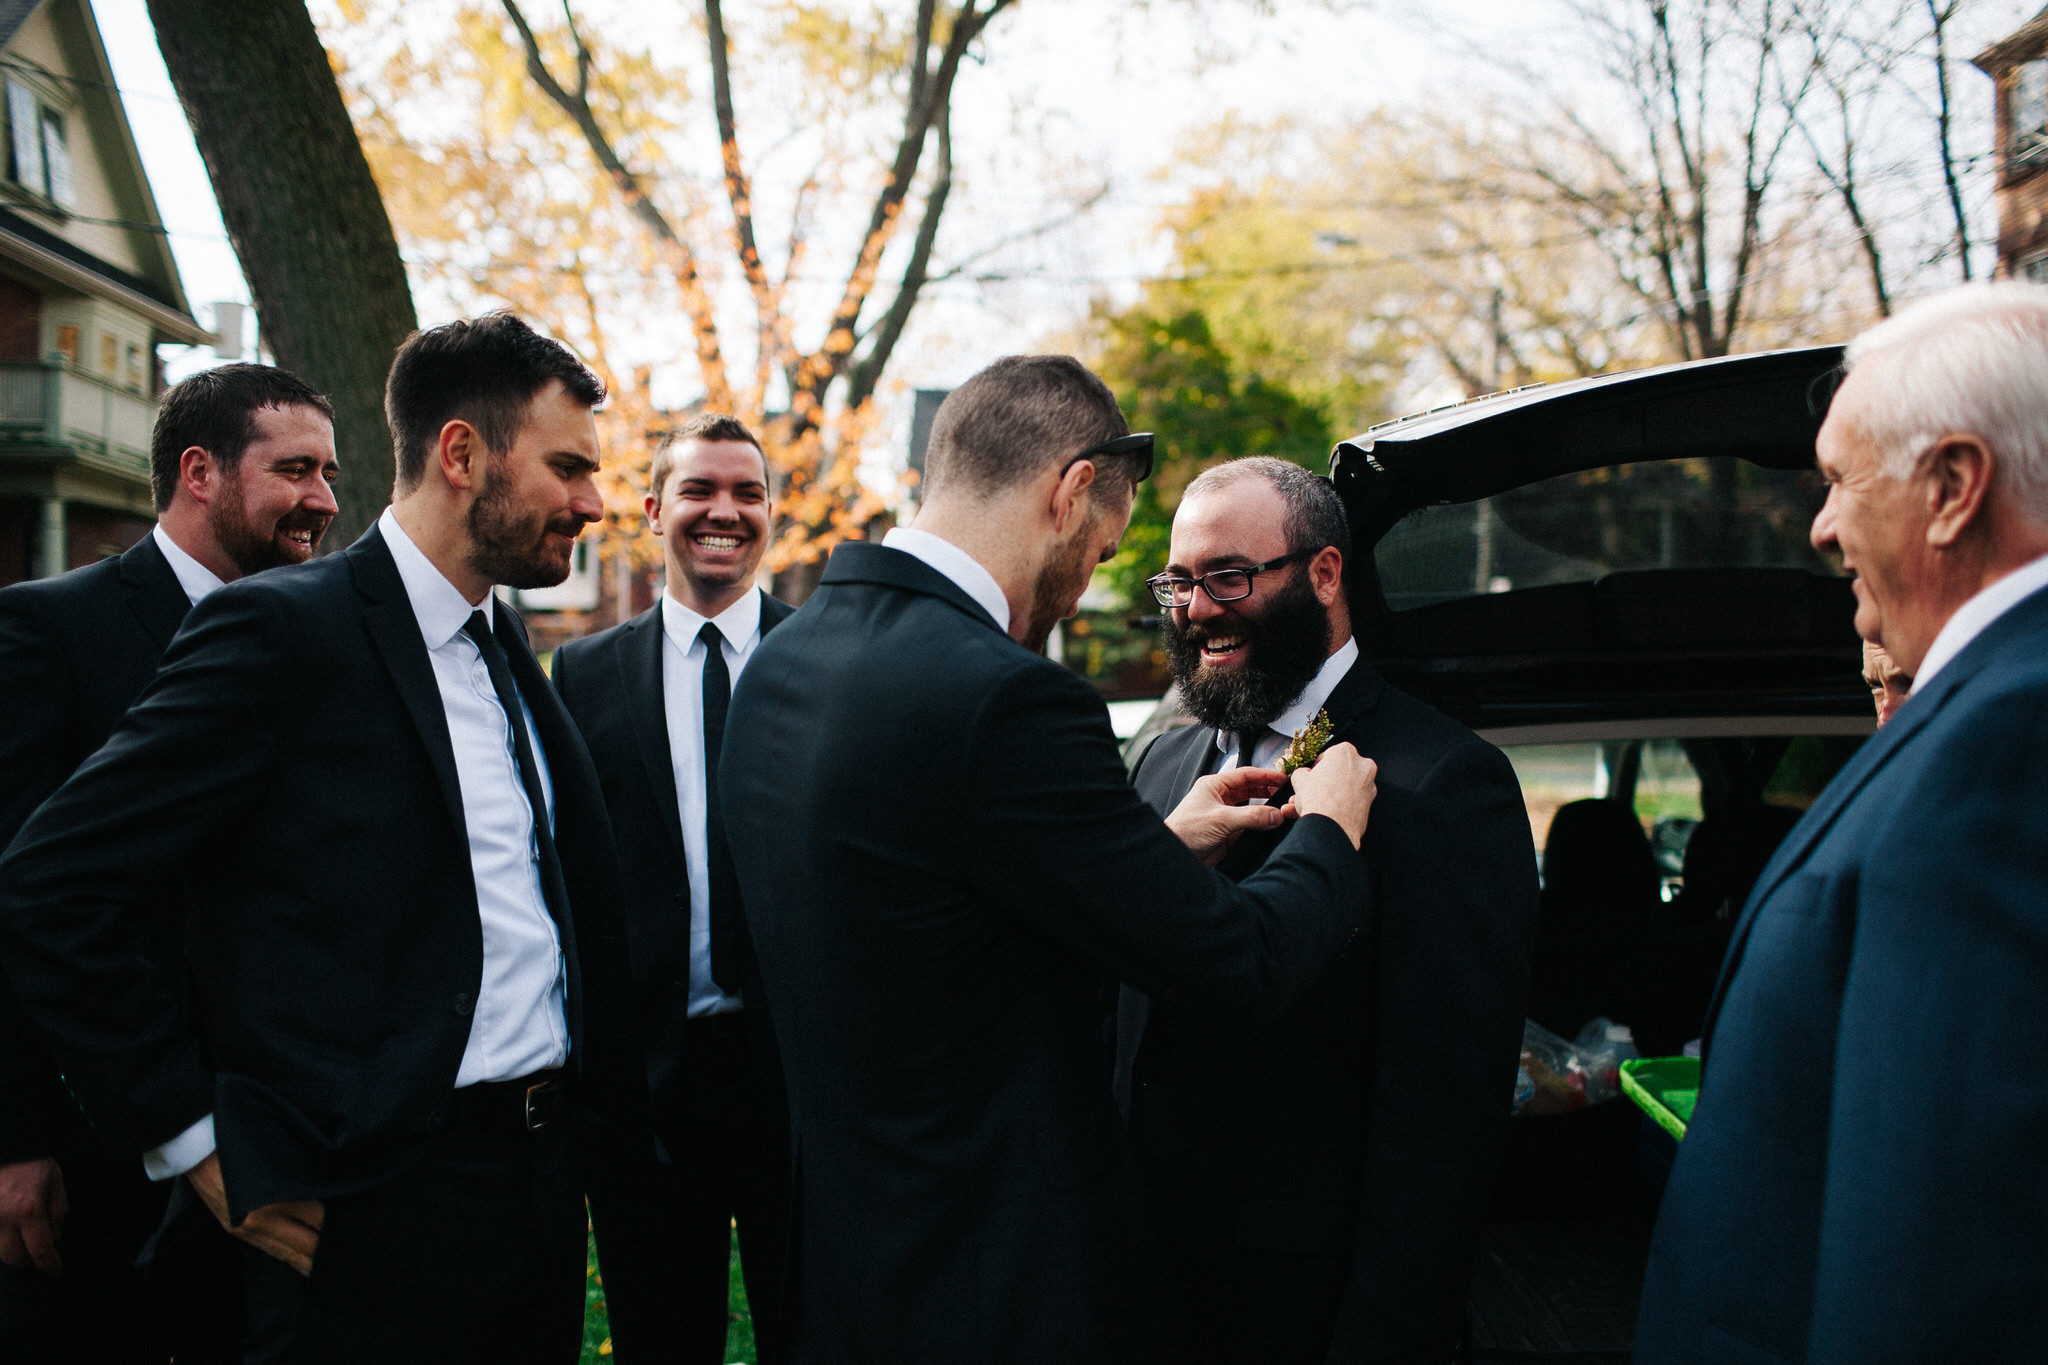 groomsmen getting dressed, groom photos, toronto wedding photographer, documentary wedding photographer, berkeley church wedding